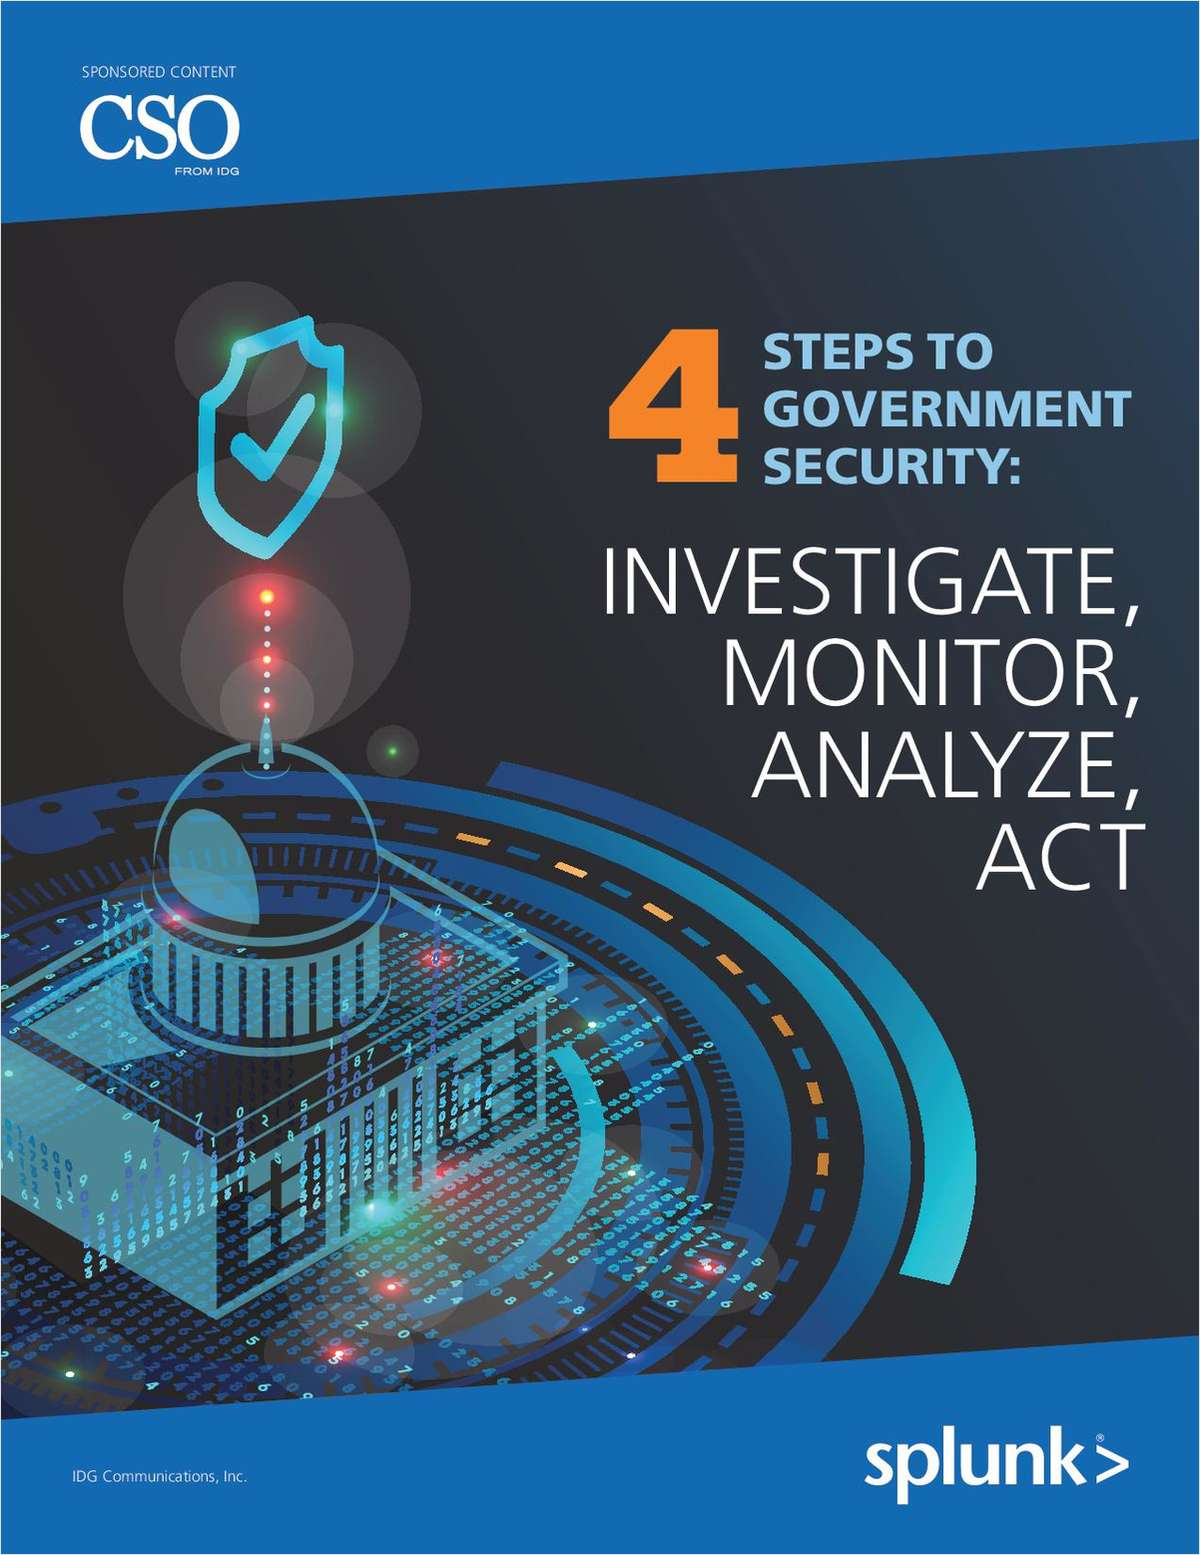 4 Steps to Government Security: Investigate, Monitor, Analyze, Act